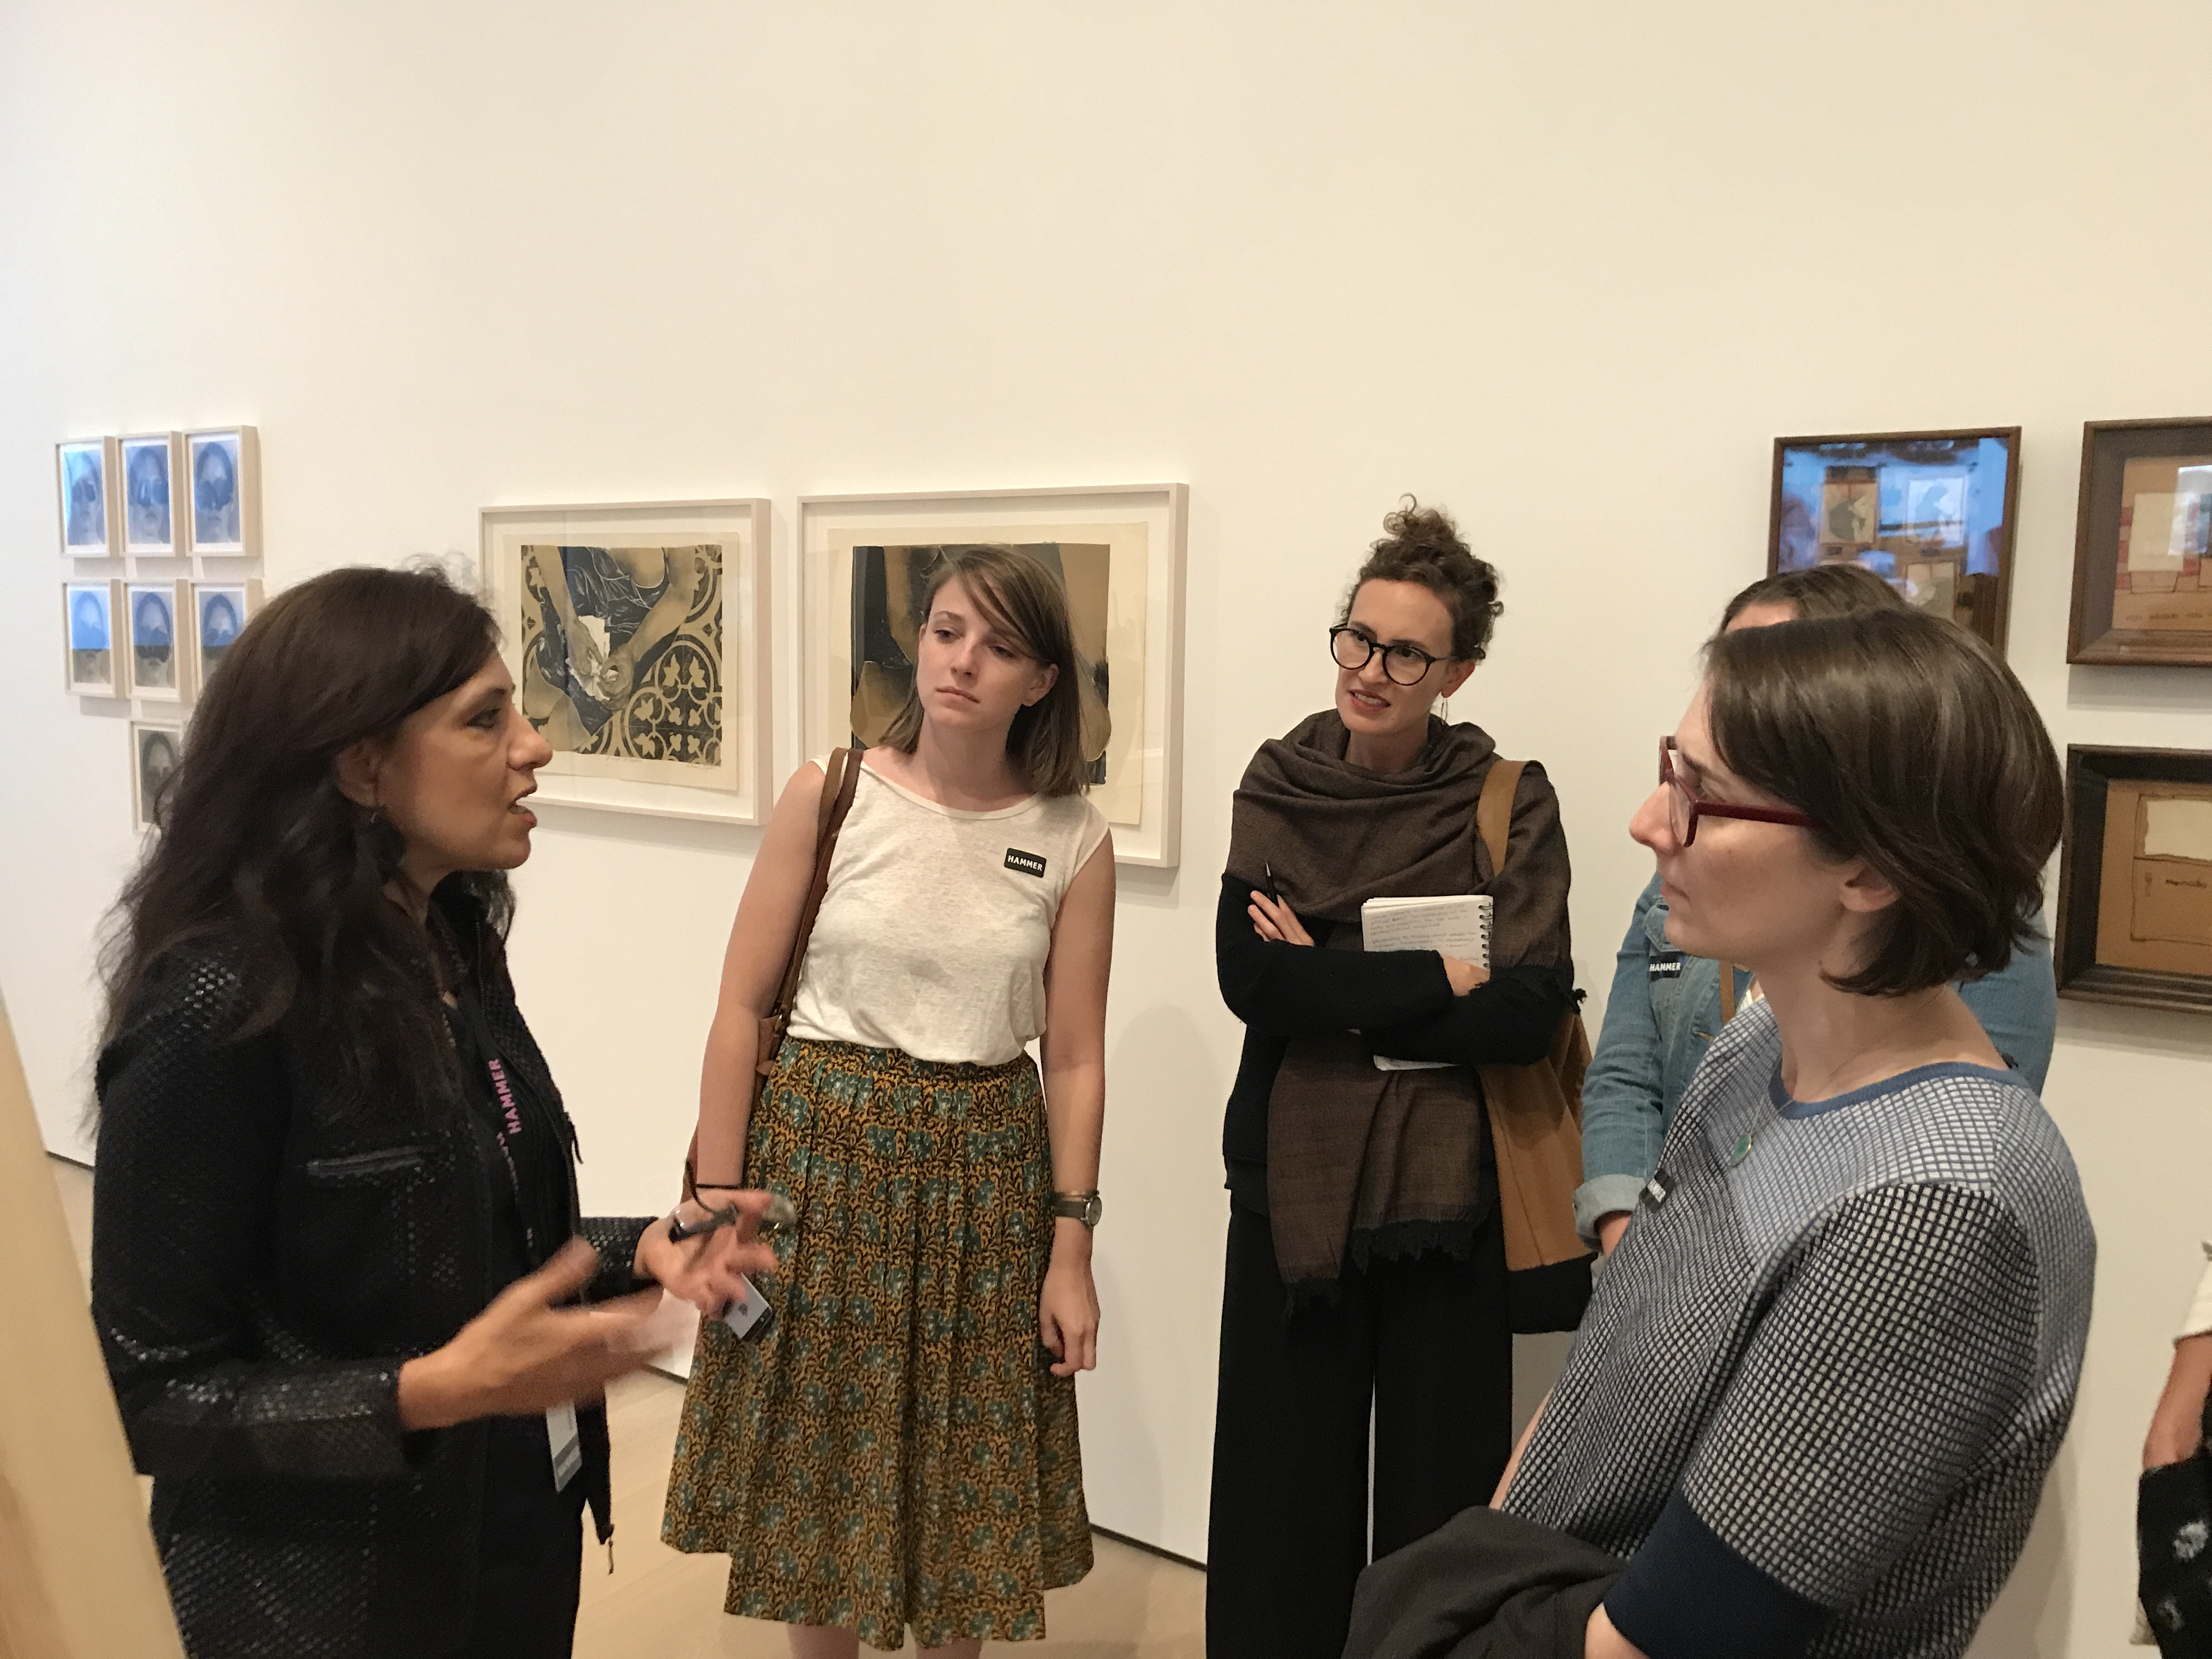 Andrea Giunta hosts CLAVIS at the Hammer Museum for the Radical Women Exhibition (2017)